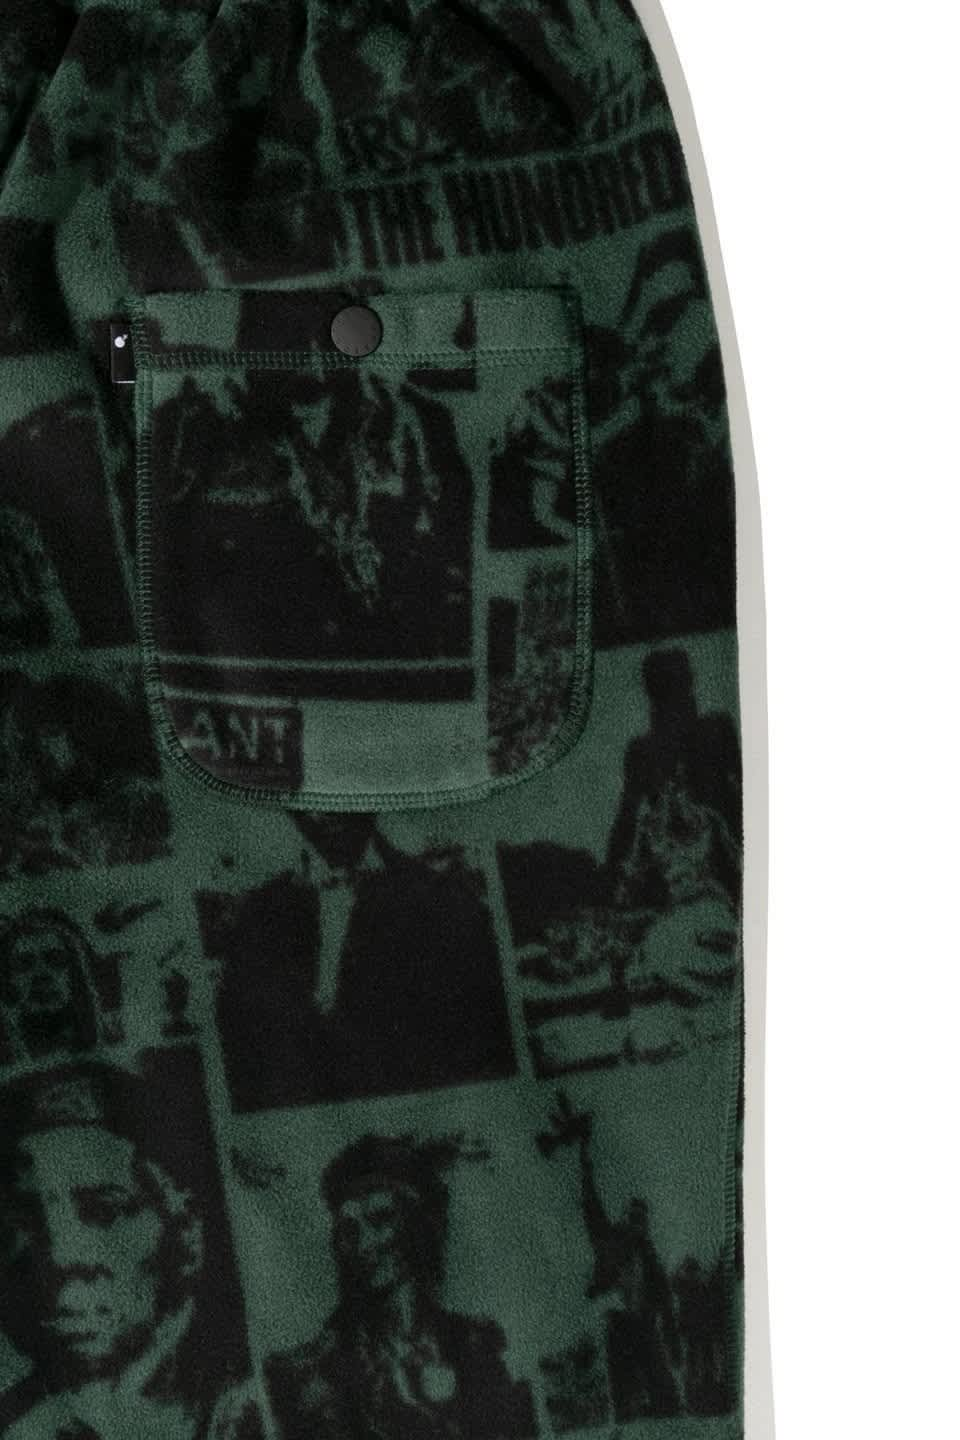 The Hundreds Resist Sweatpants - Hunter Green   Sweatpants by The Hundreds 3